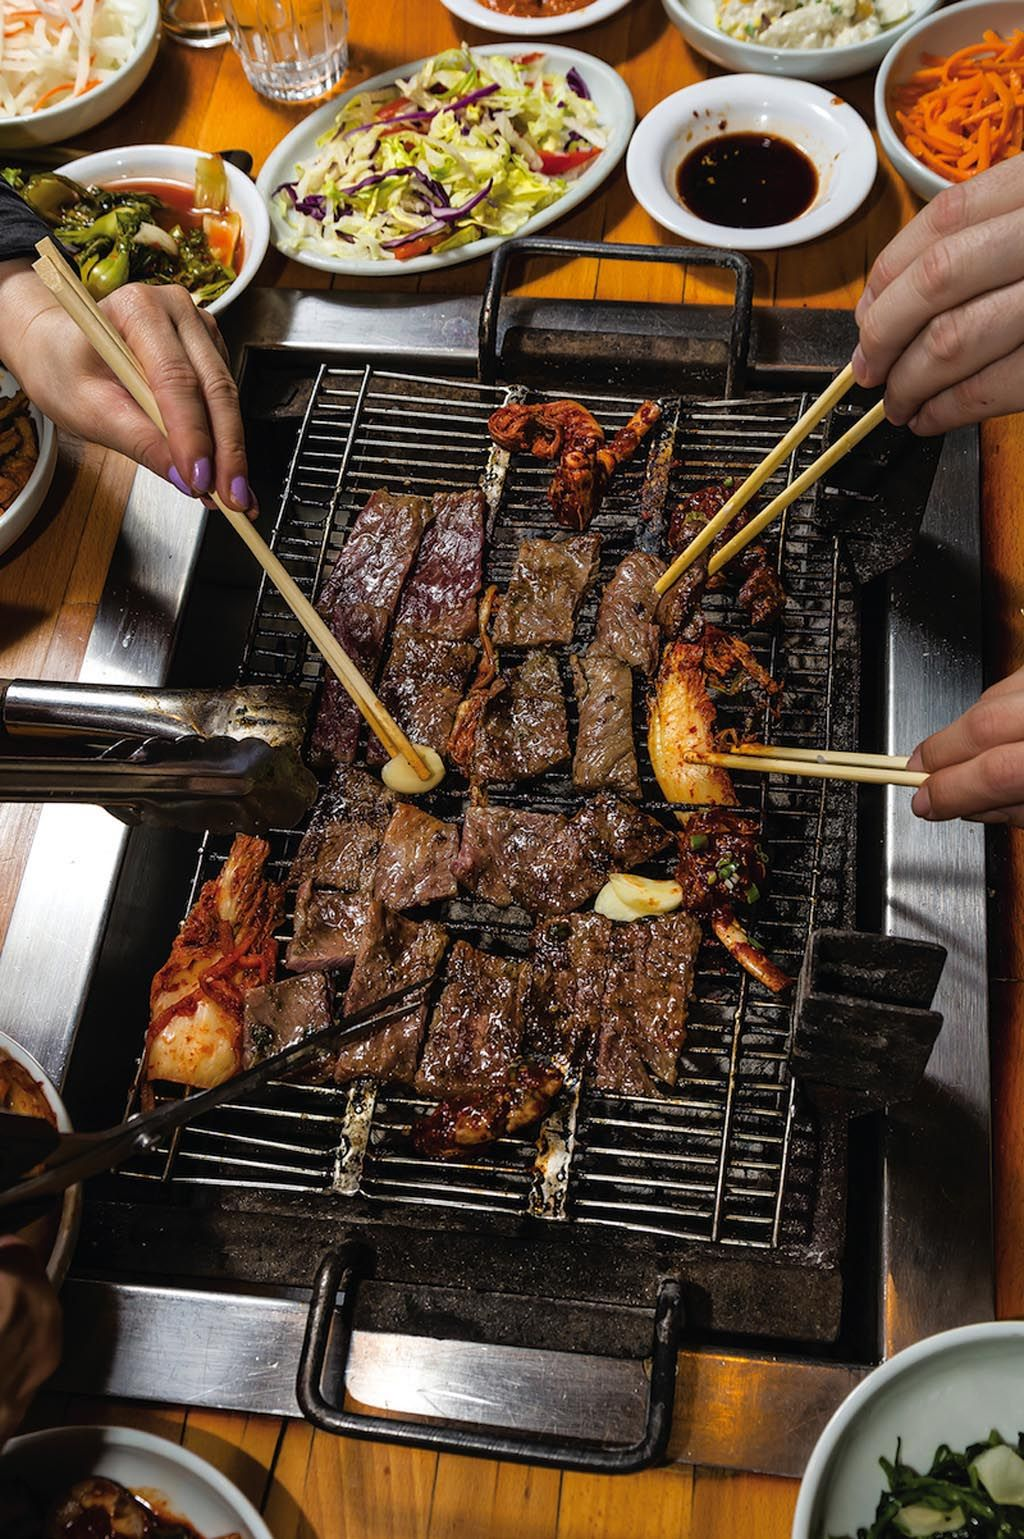 Table Top Korean Bbq Grill Fire Pit Design Ideas Grilled Beef